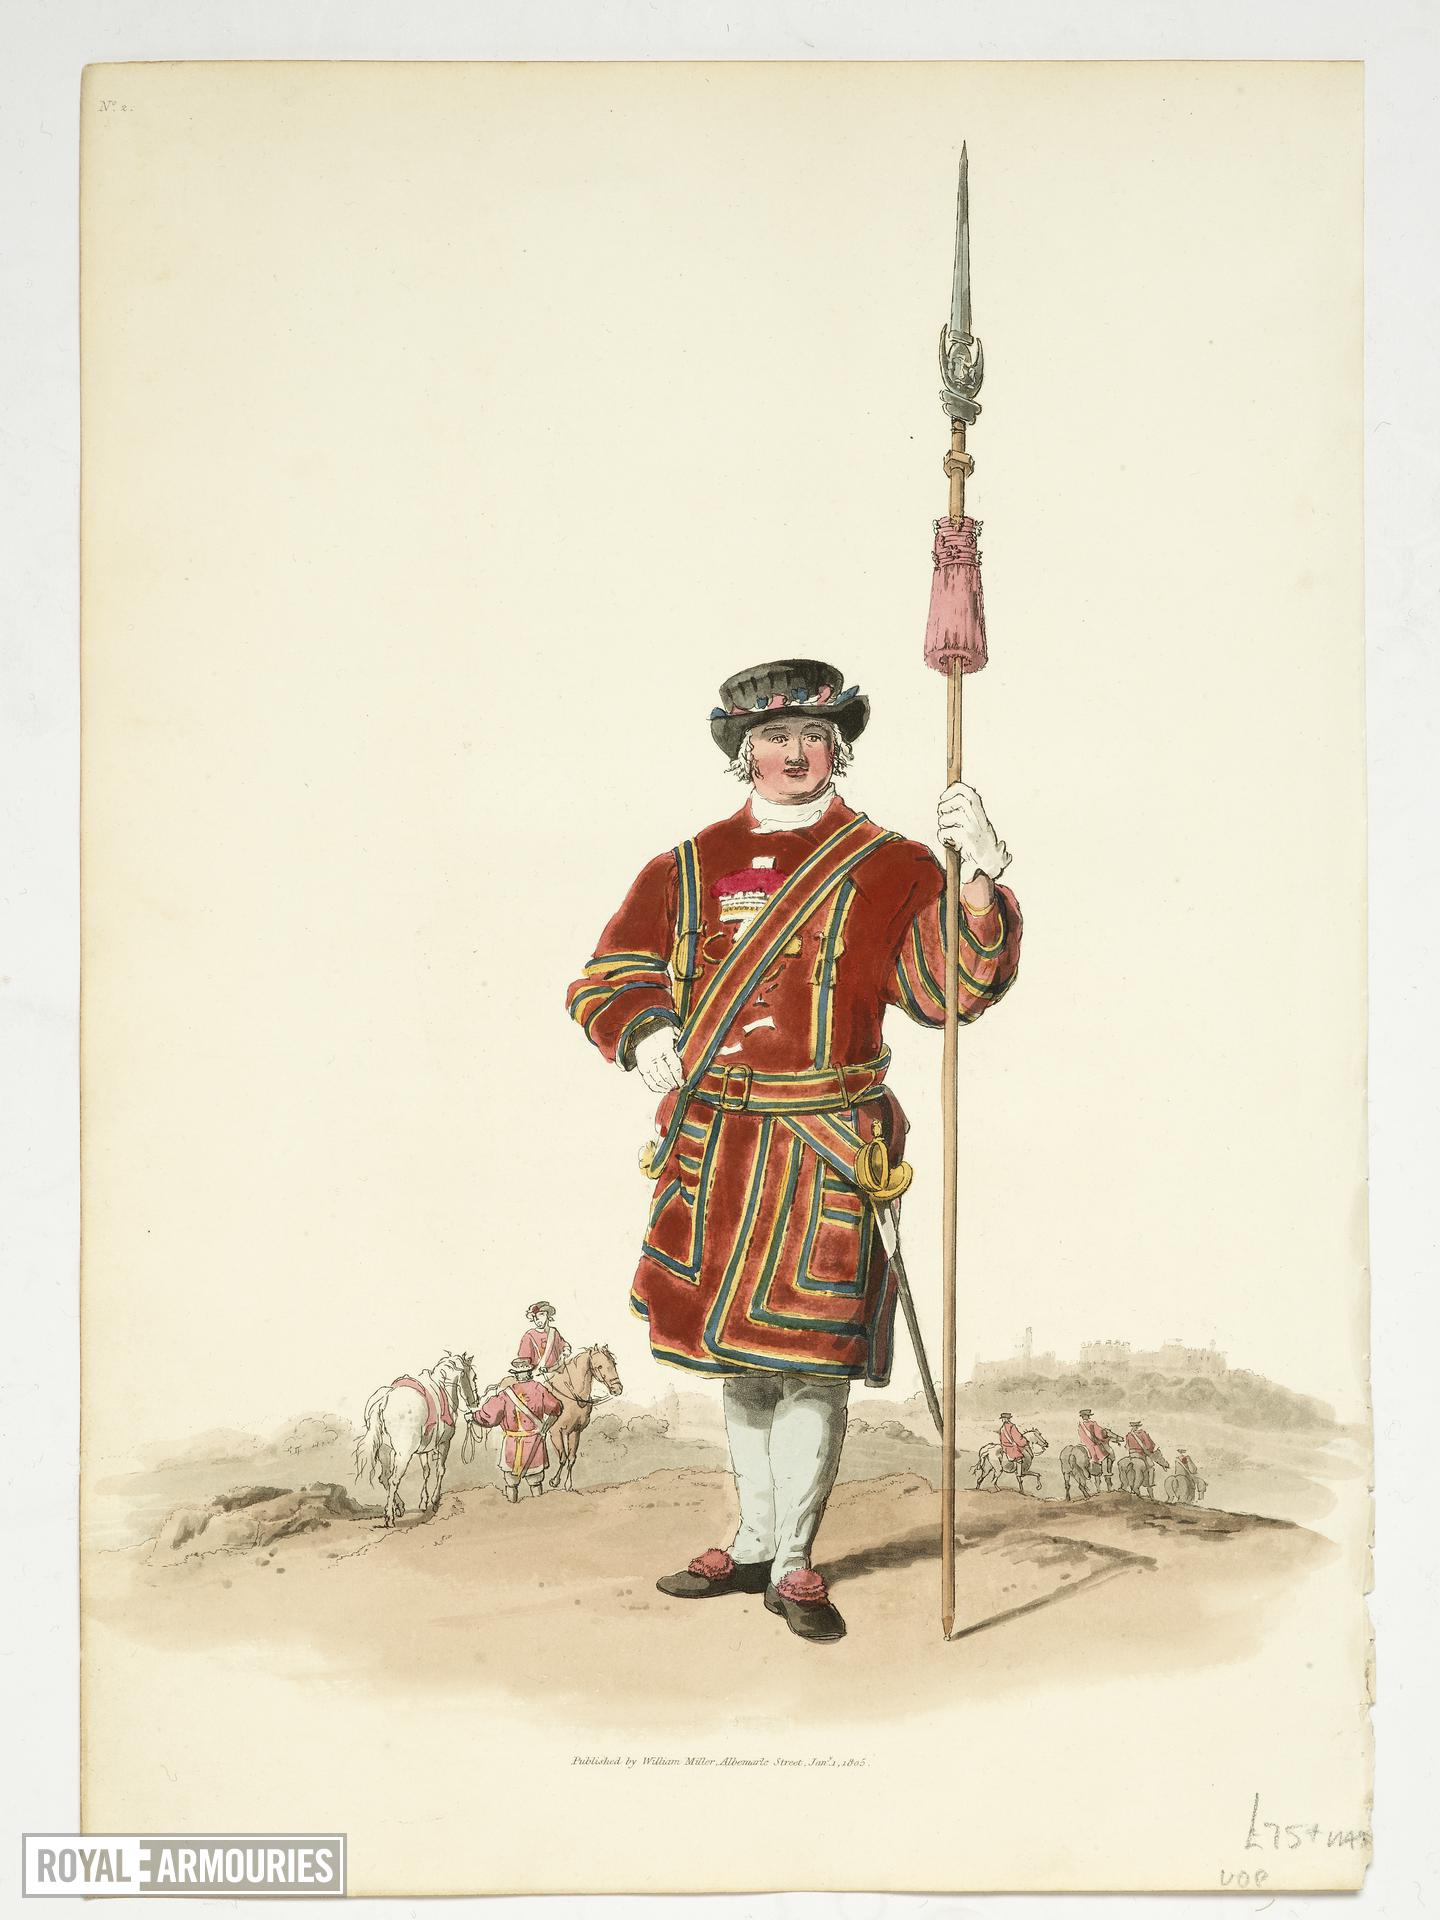 Aquatint Coloured aquatint of a member of the Yeoman of the King's Guard